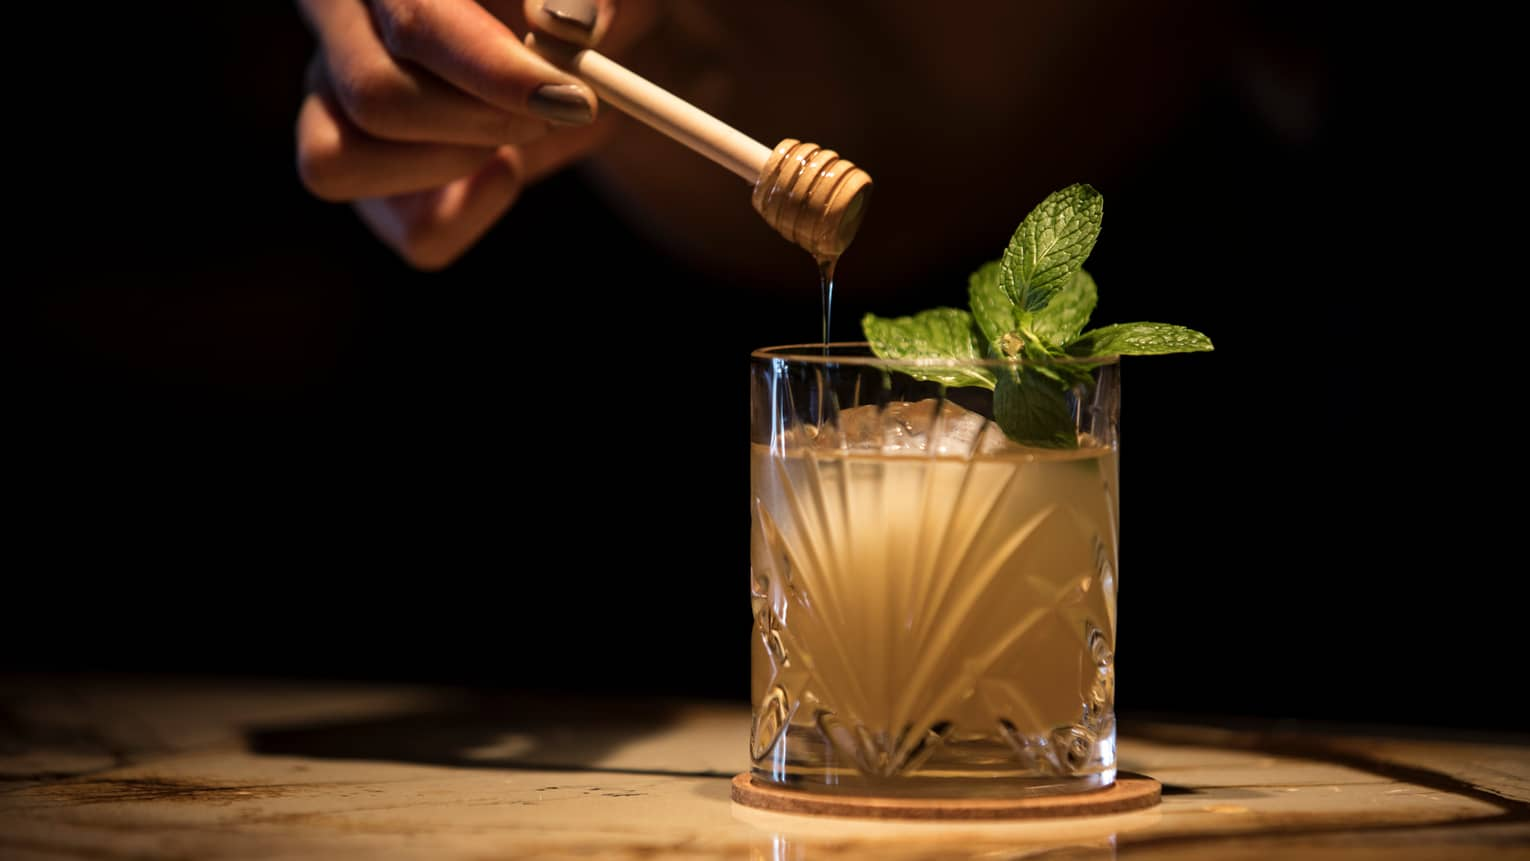 A cocktail with a sprig of mint sits on a table with dim lighting, a hand drizzles honey into it